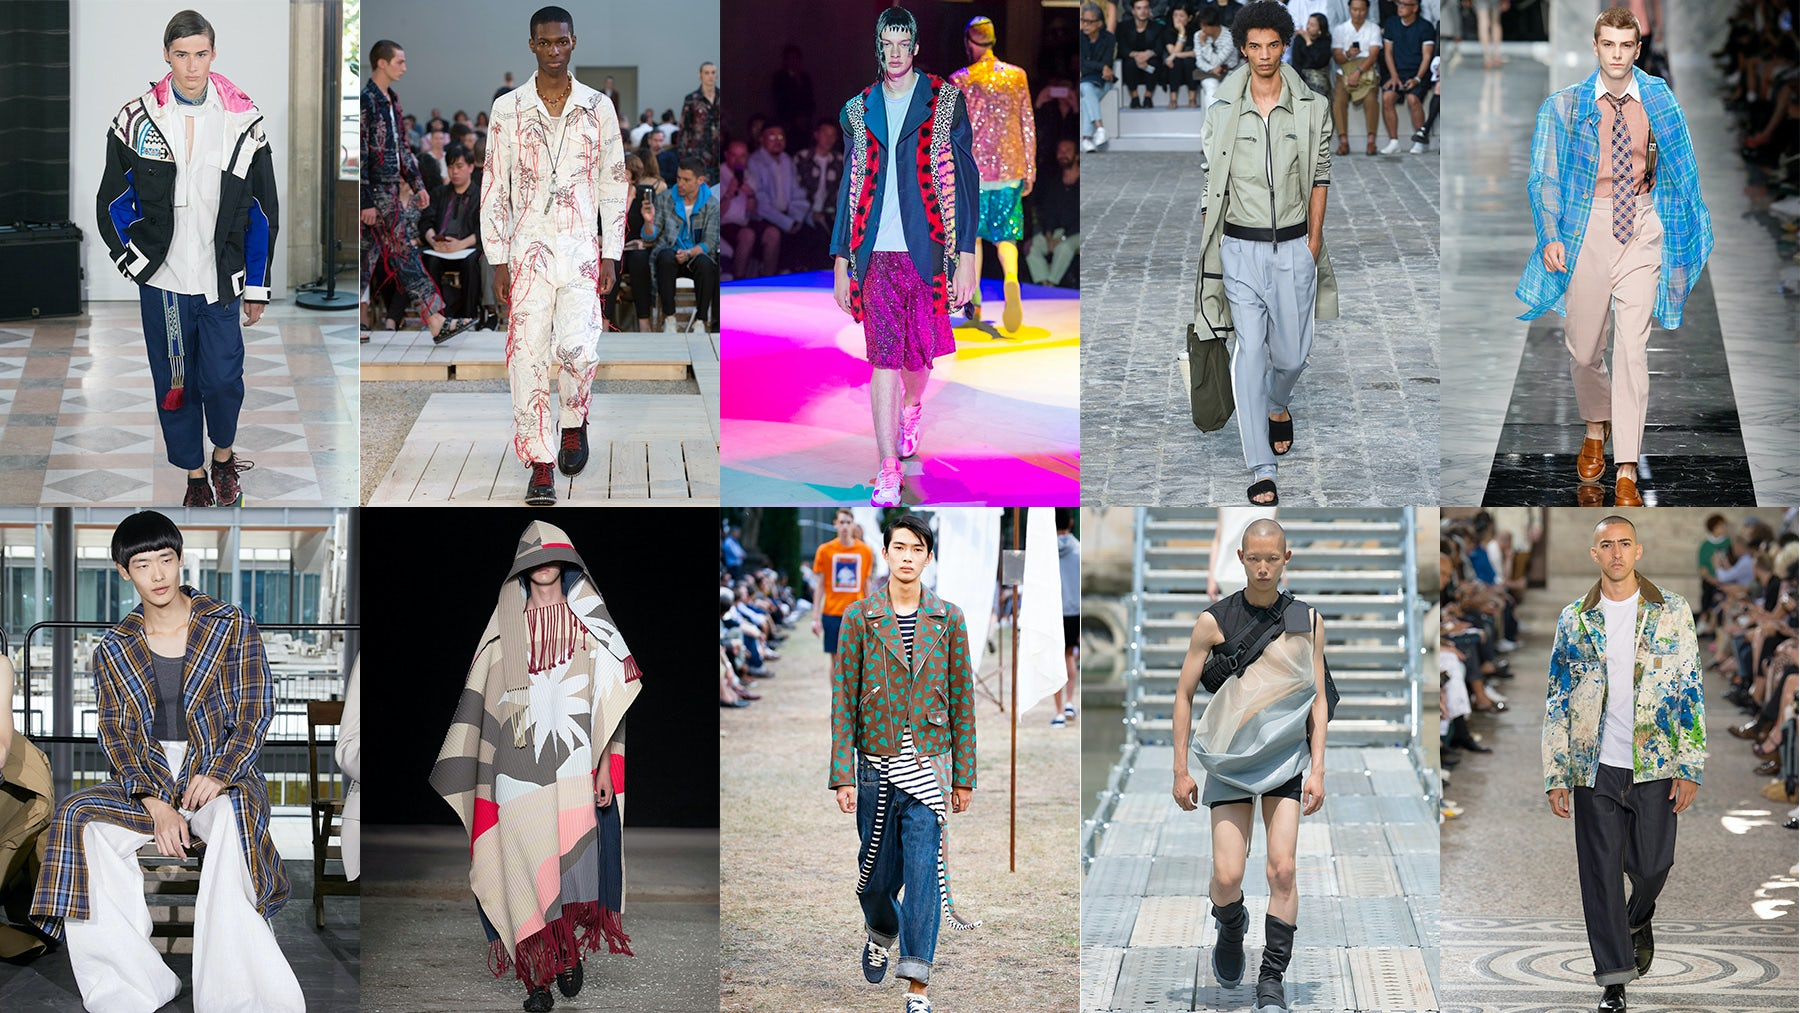 Top 10 Menswear Shows for Spring/Summer 2018